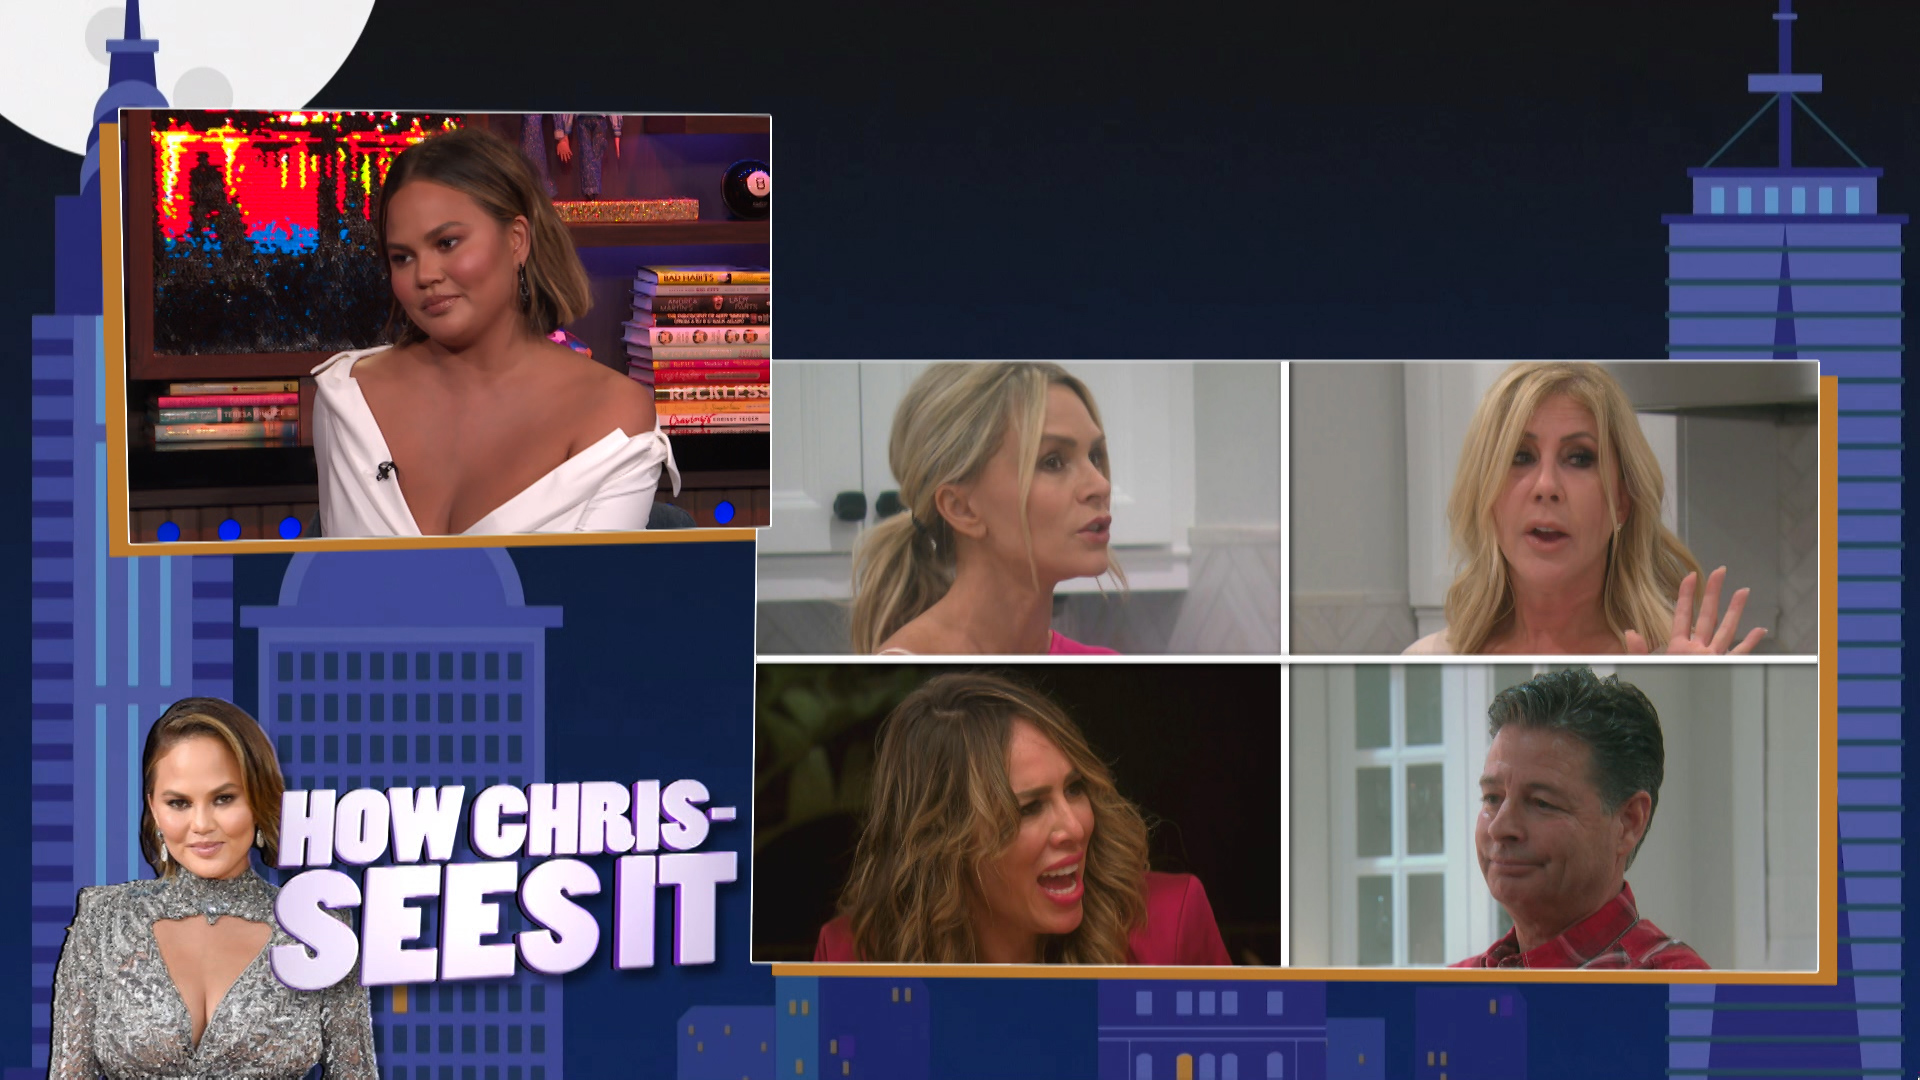 Chrissy Teigen on #RHONY, #RHOC & #BelowDeckMed